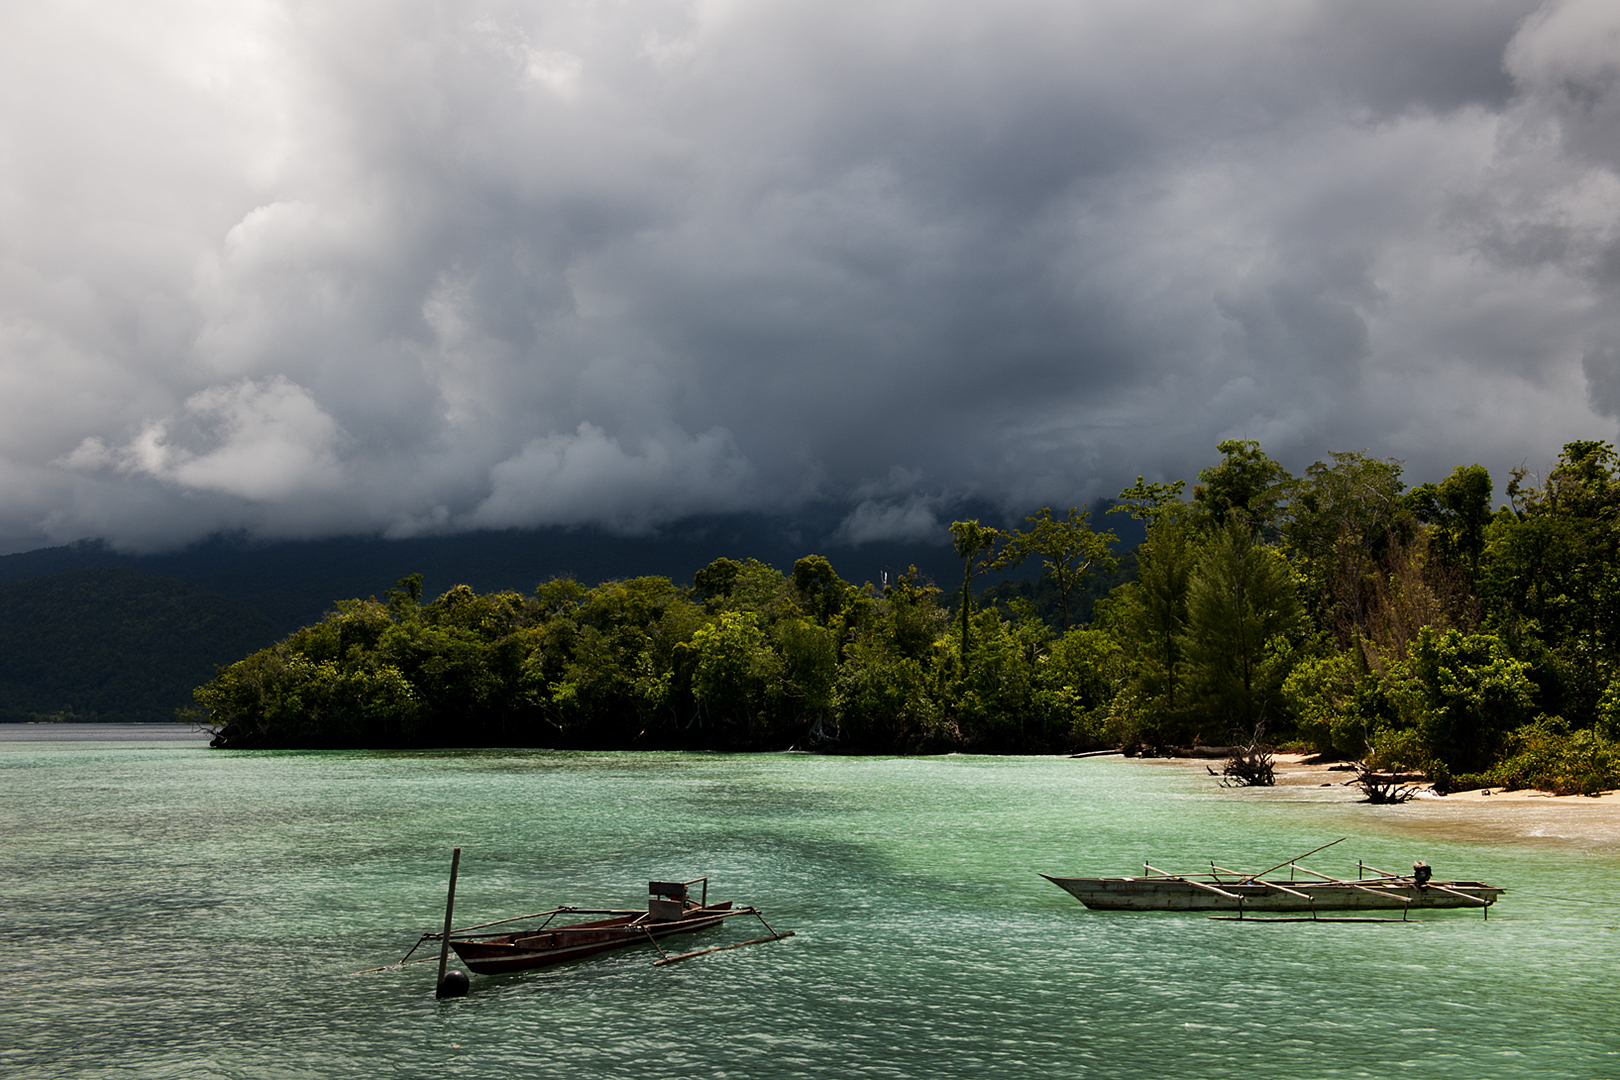 Though the temperature might be pleasant all year round, Raja Ampat is occasionally clouded by rain and thunder. The thick rainforest on the islands contribute to the humidity, and warm days often bring thunder in the afternoon and evening.